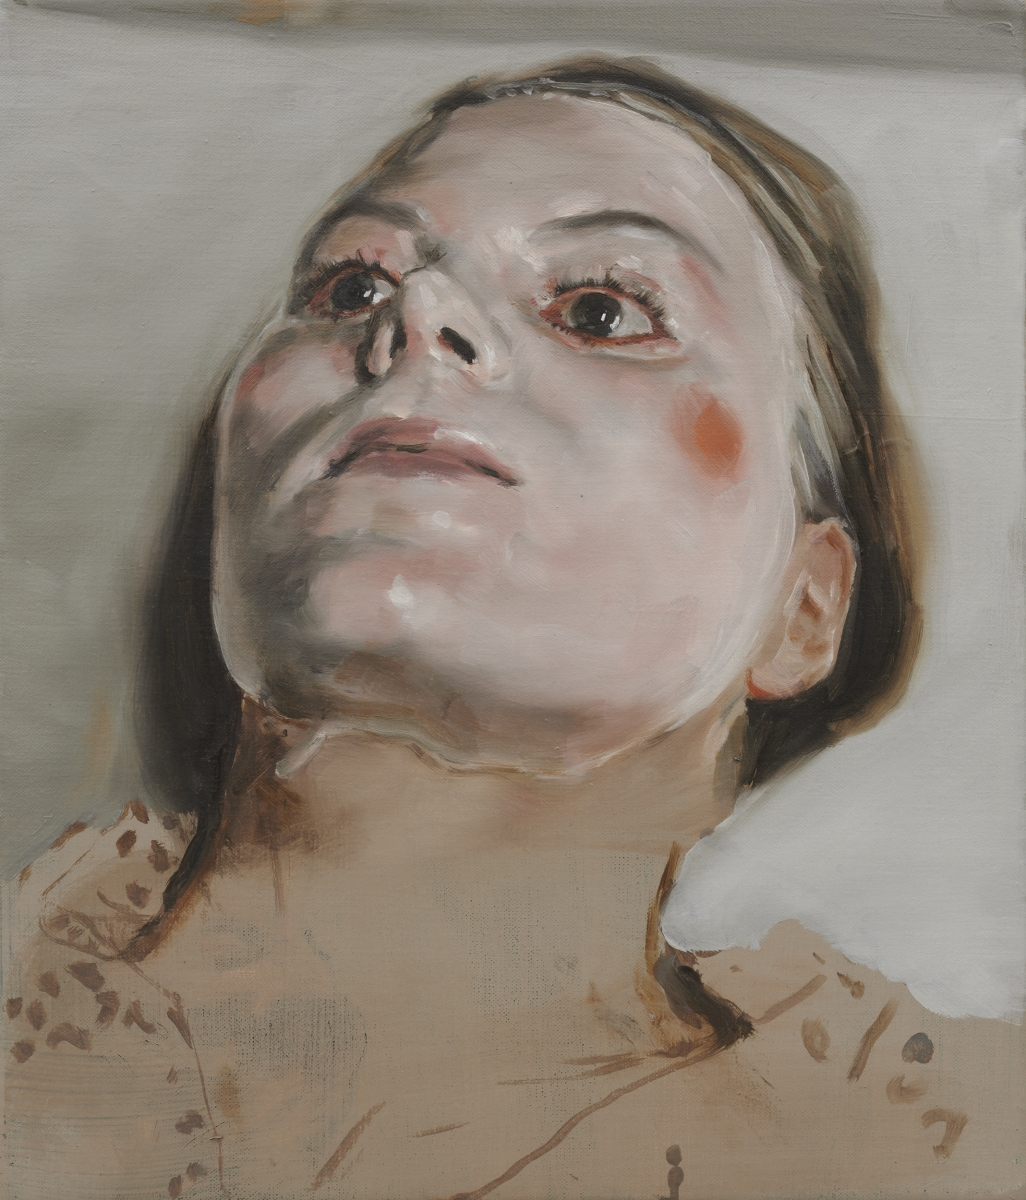 Michaël Borremans, untitled, 2008.